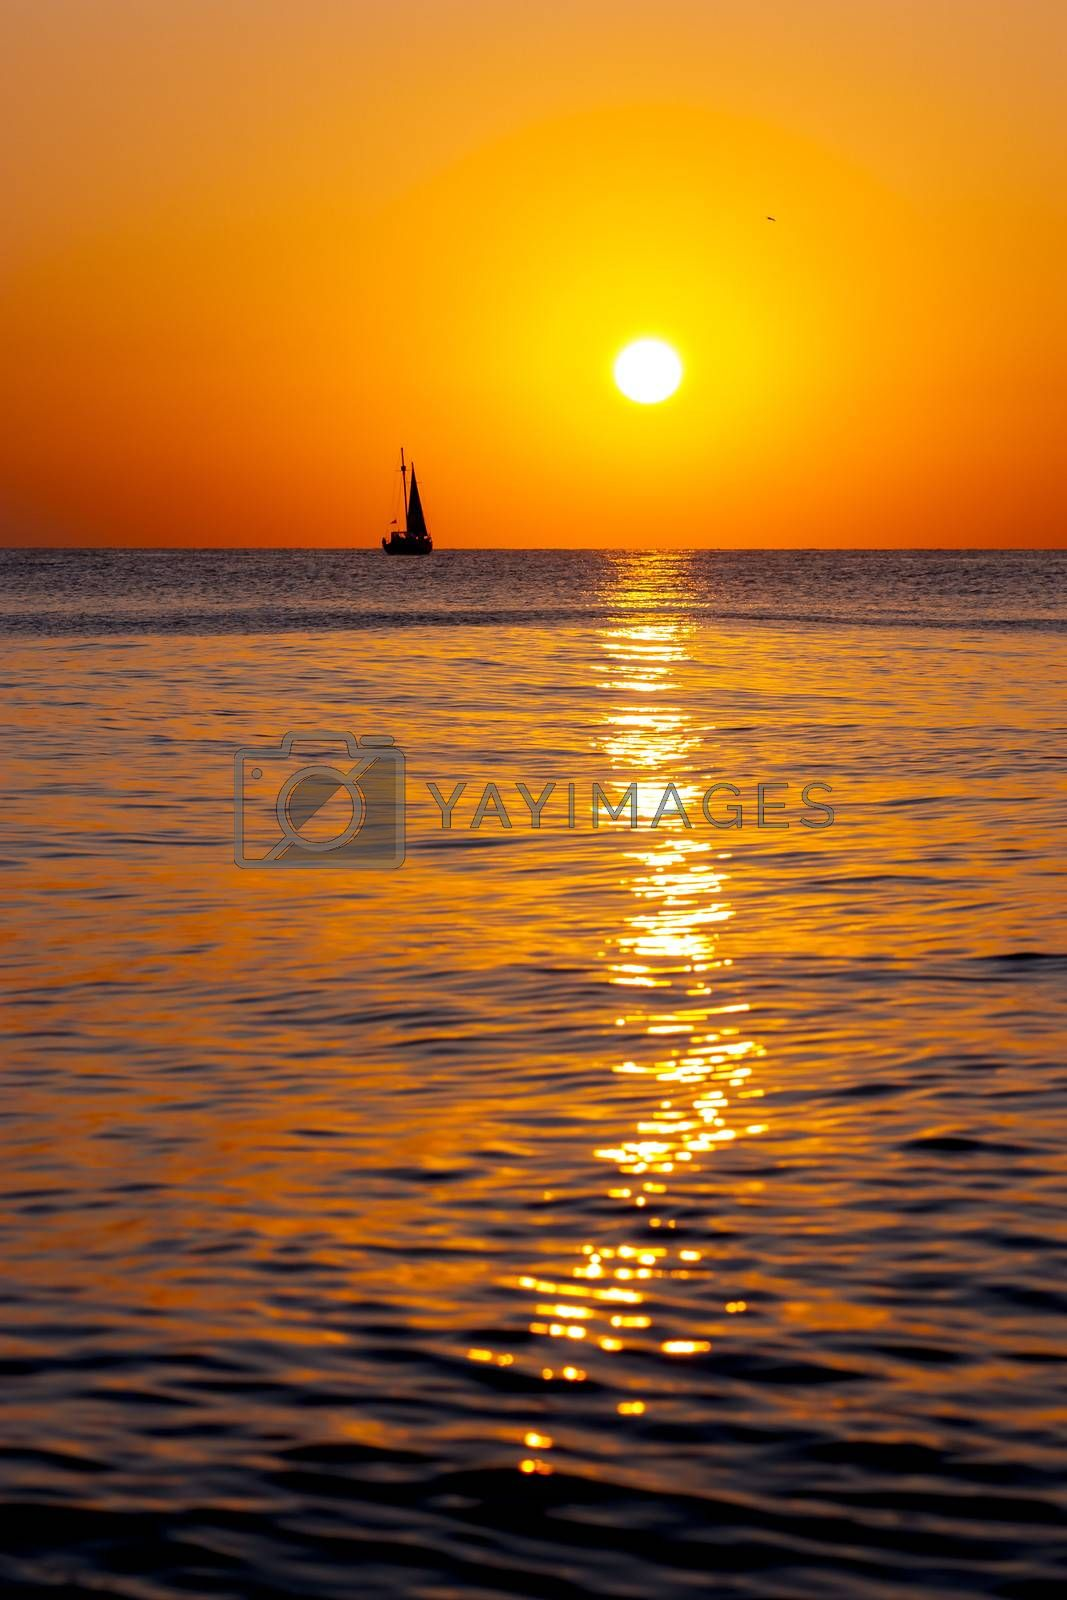 Single yacht in the sea at sunset